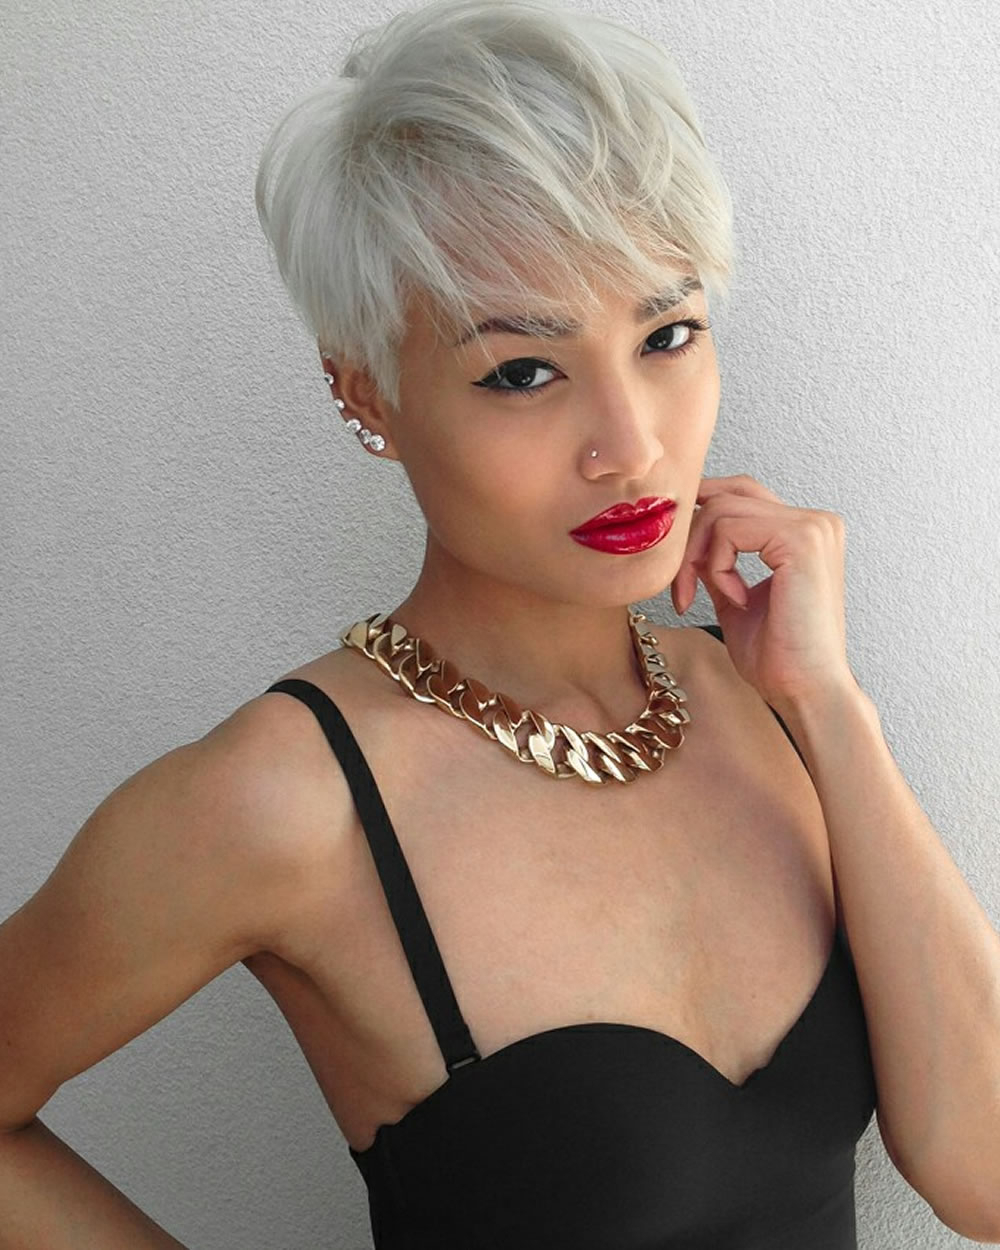 Pixie Haircuts For Asian Women (Gallery 1 of 20)